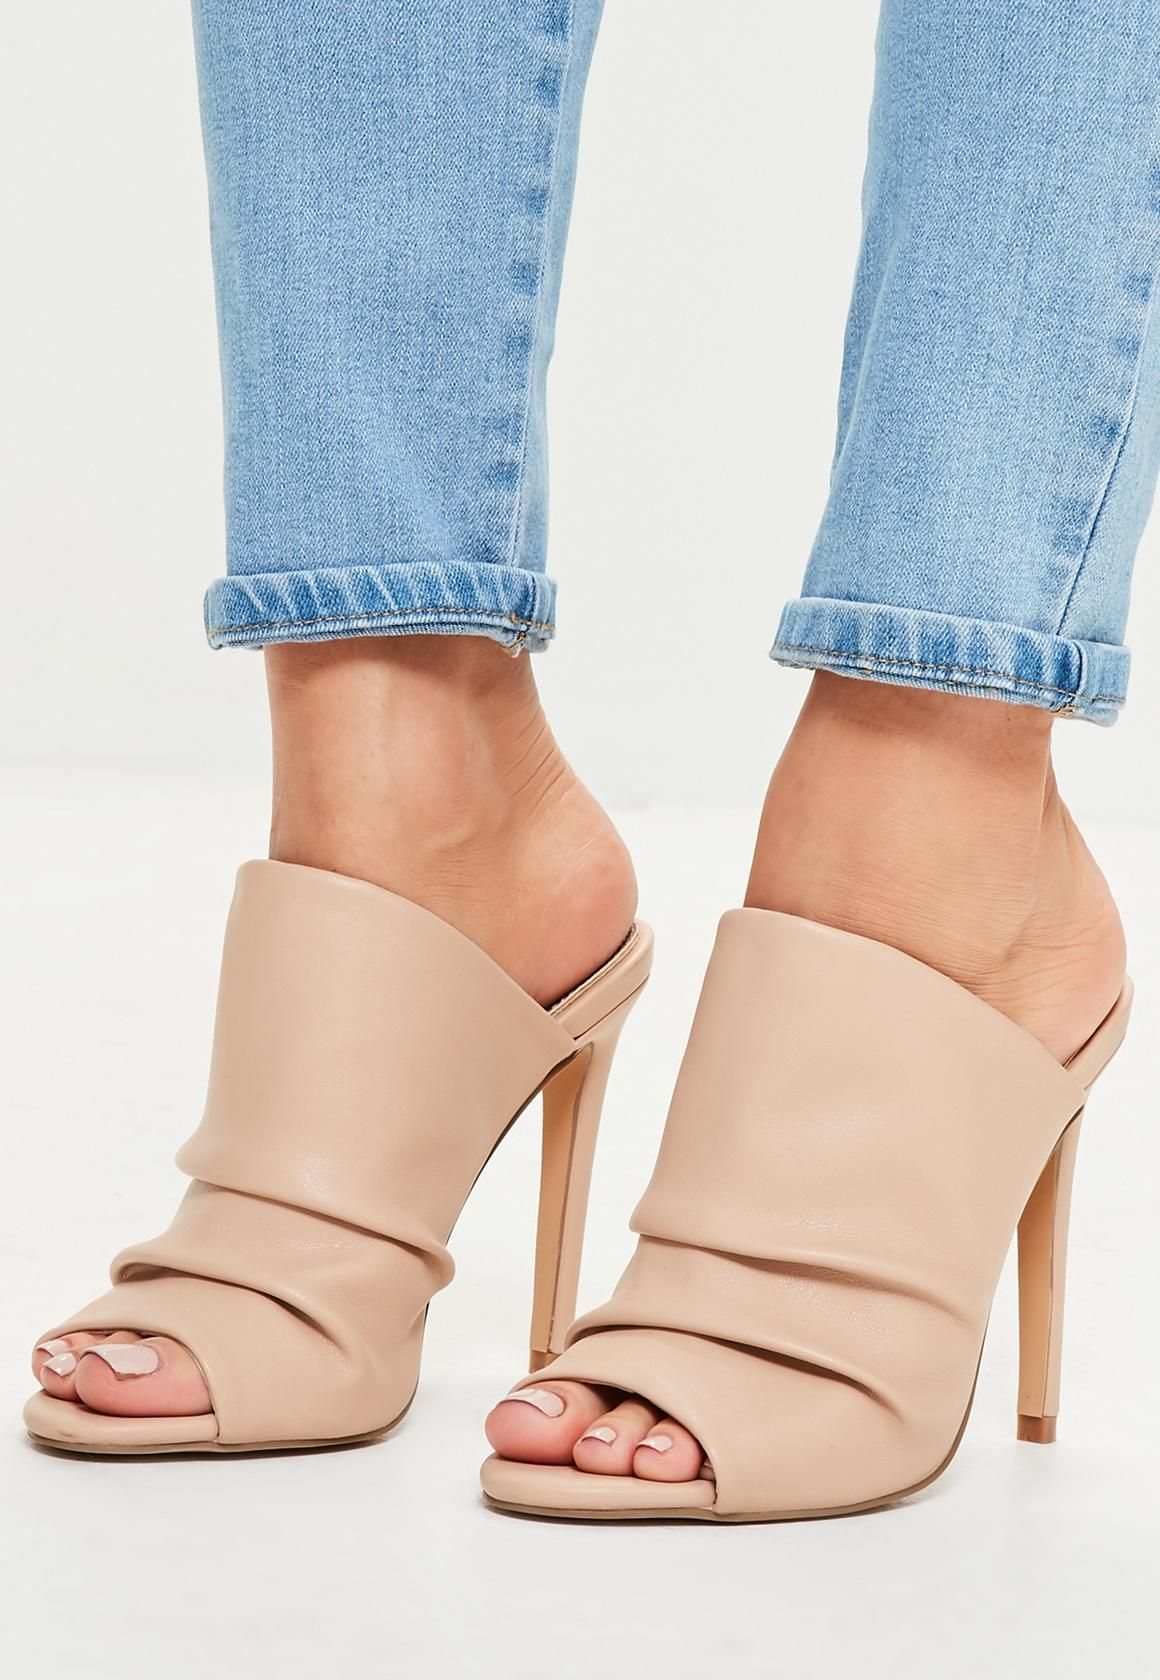 bc5b0f10242 Missguided - Pink Ruched Open Toe Heeled Mules | Fashion in 2019